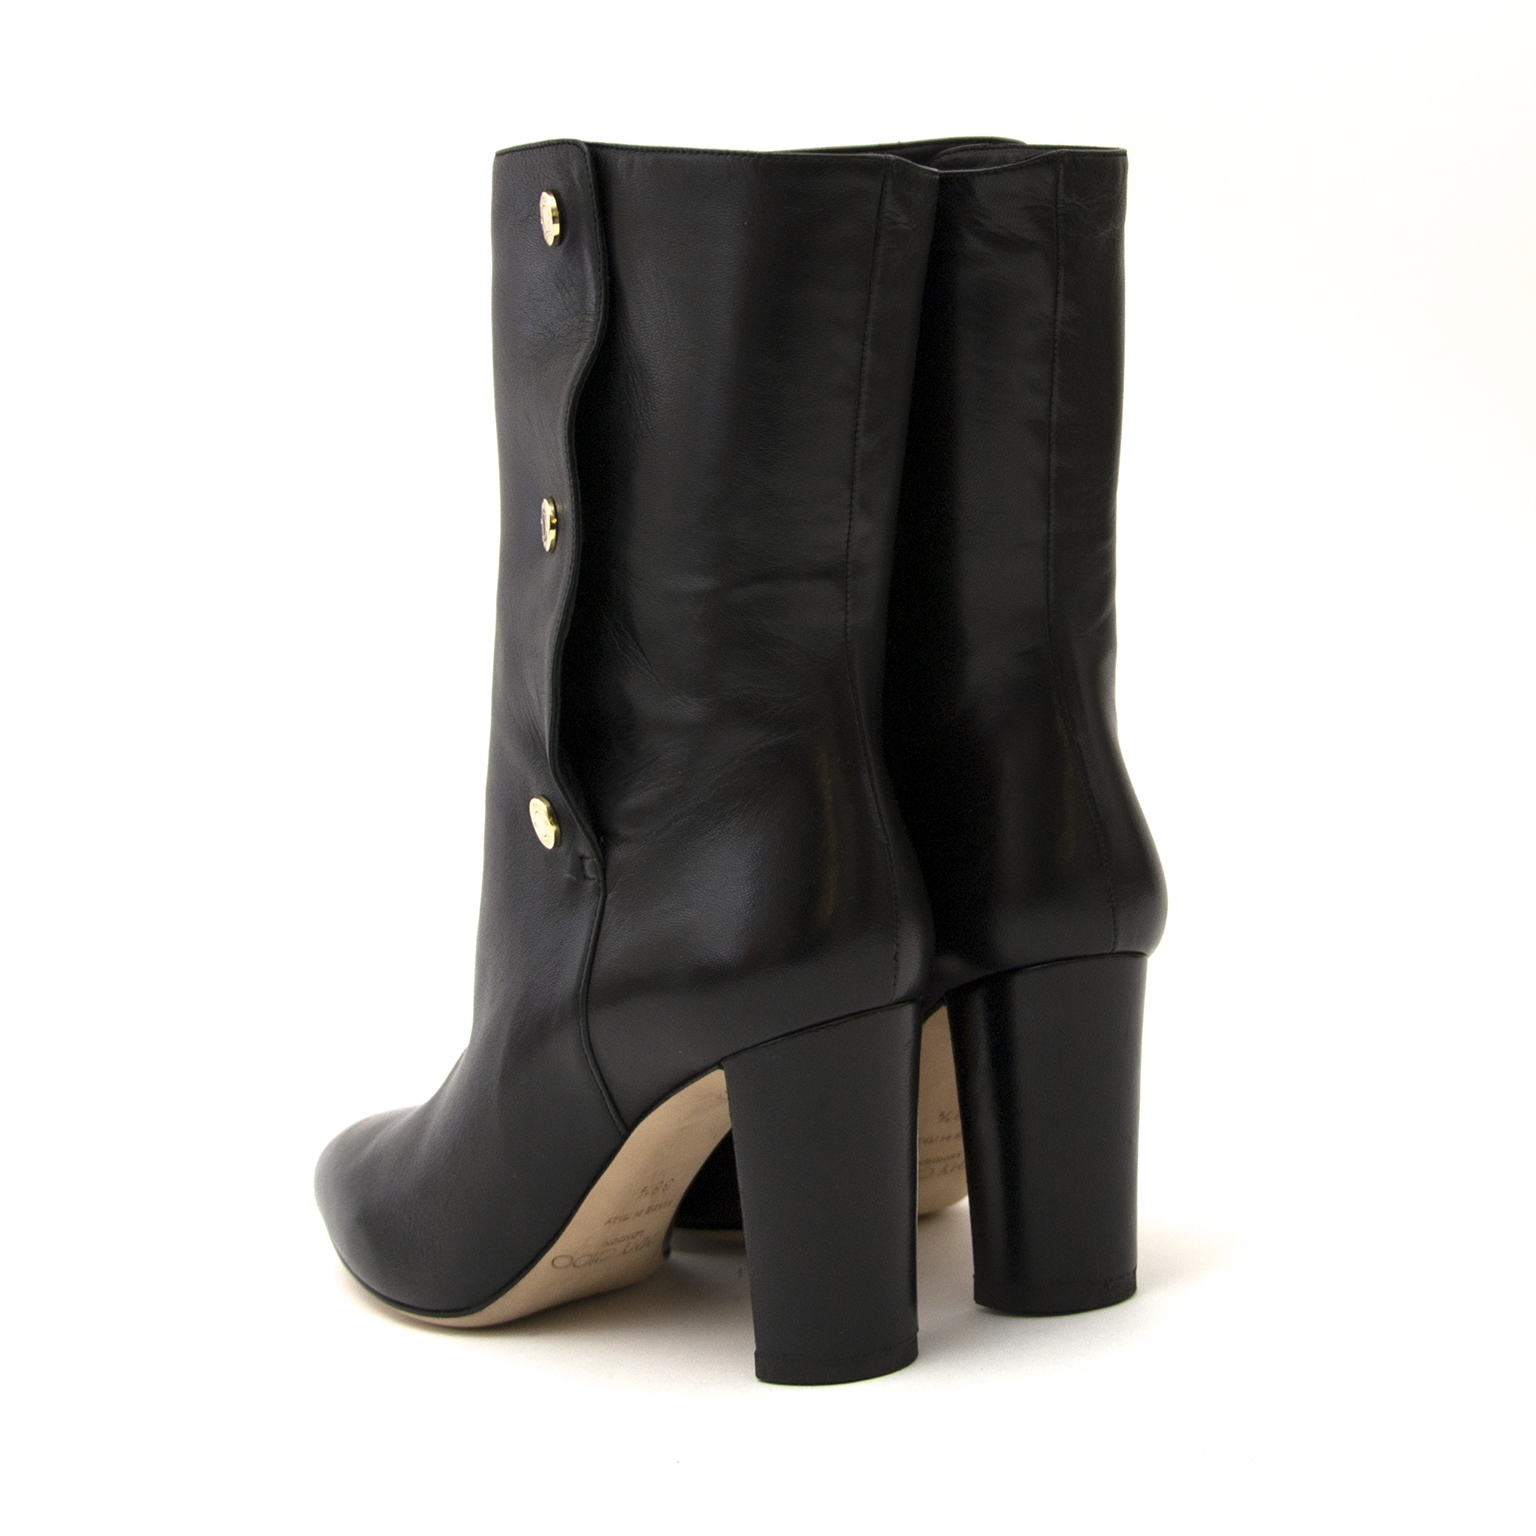 jimmy choo black dayno boots now for sale at labellov vintage fashion webshop belgium